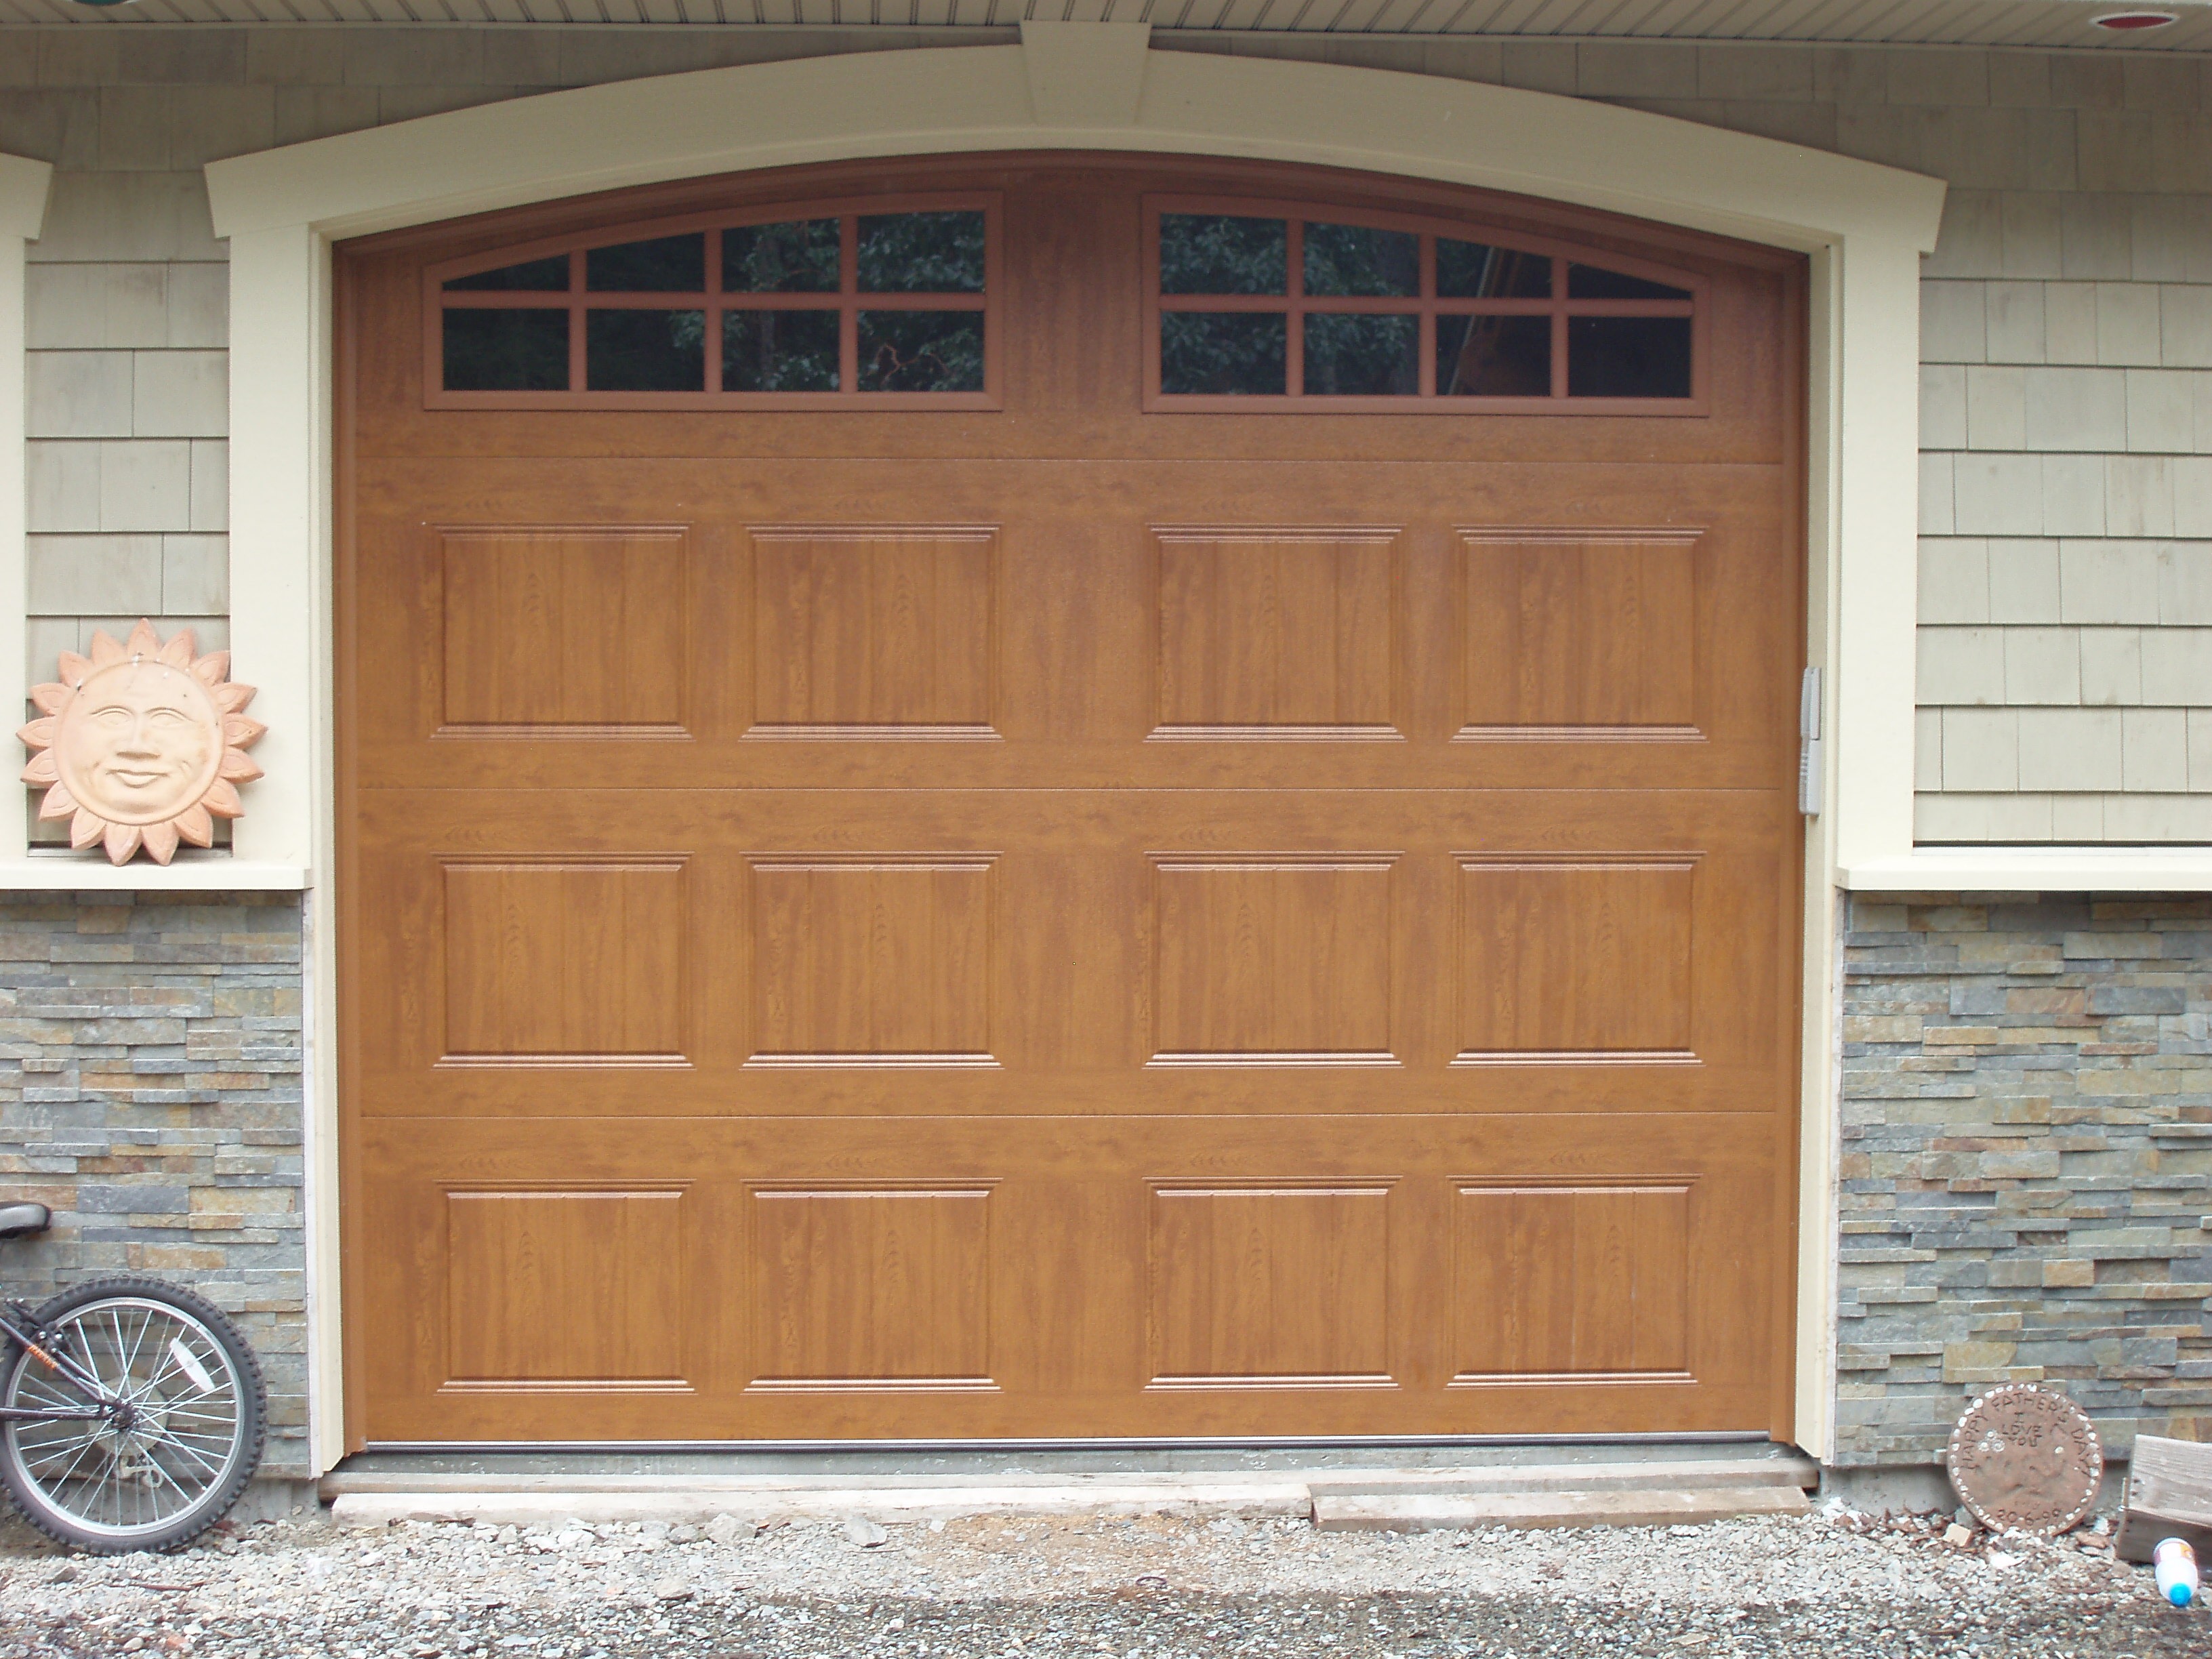 2448 #8D633E GD05 Clopay Gallery Series Door Short Panel With Long Panel Arch 1  wallpaper Coachman Collection Garage Doors 36153264